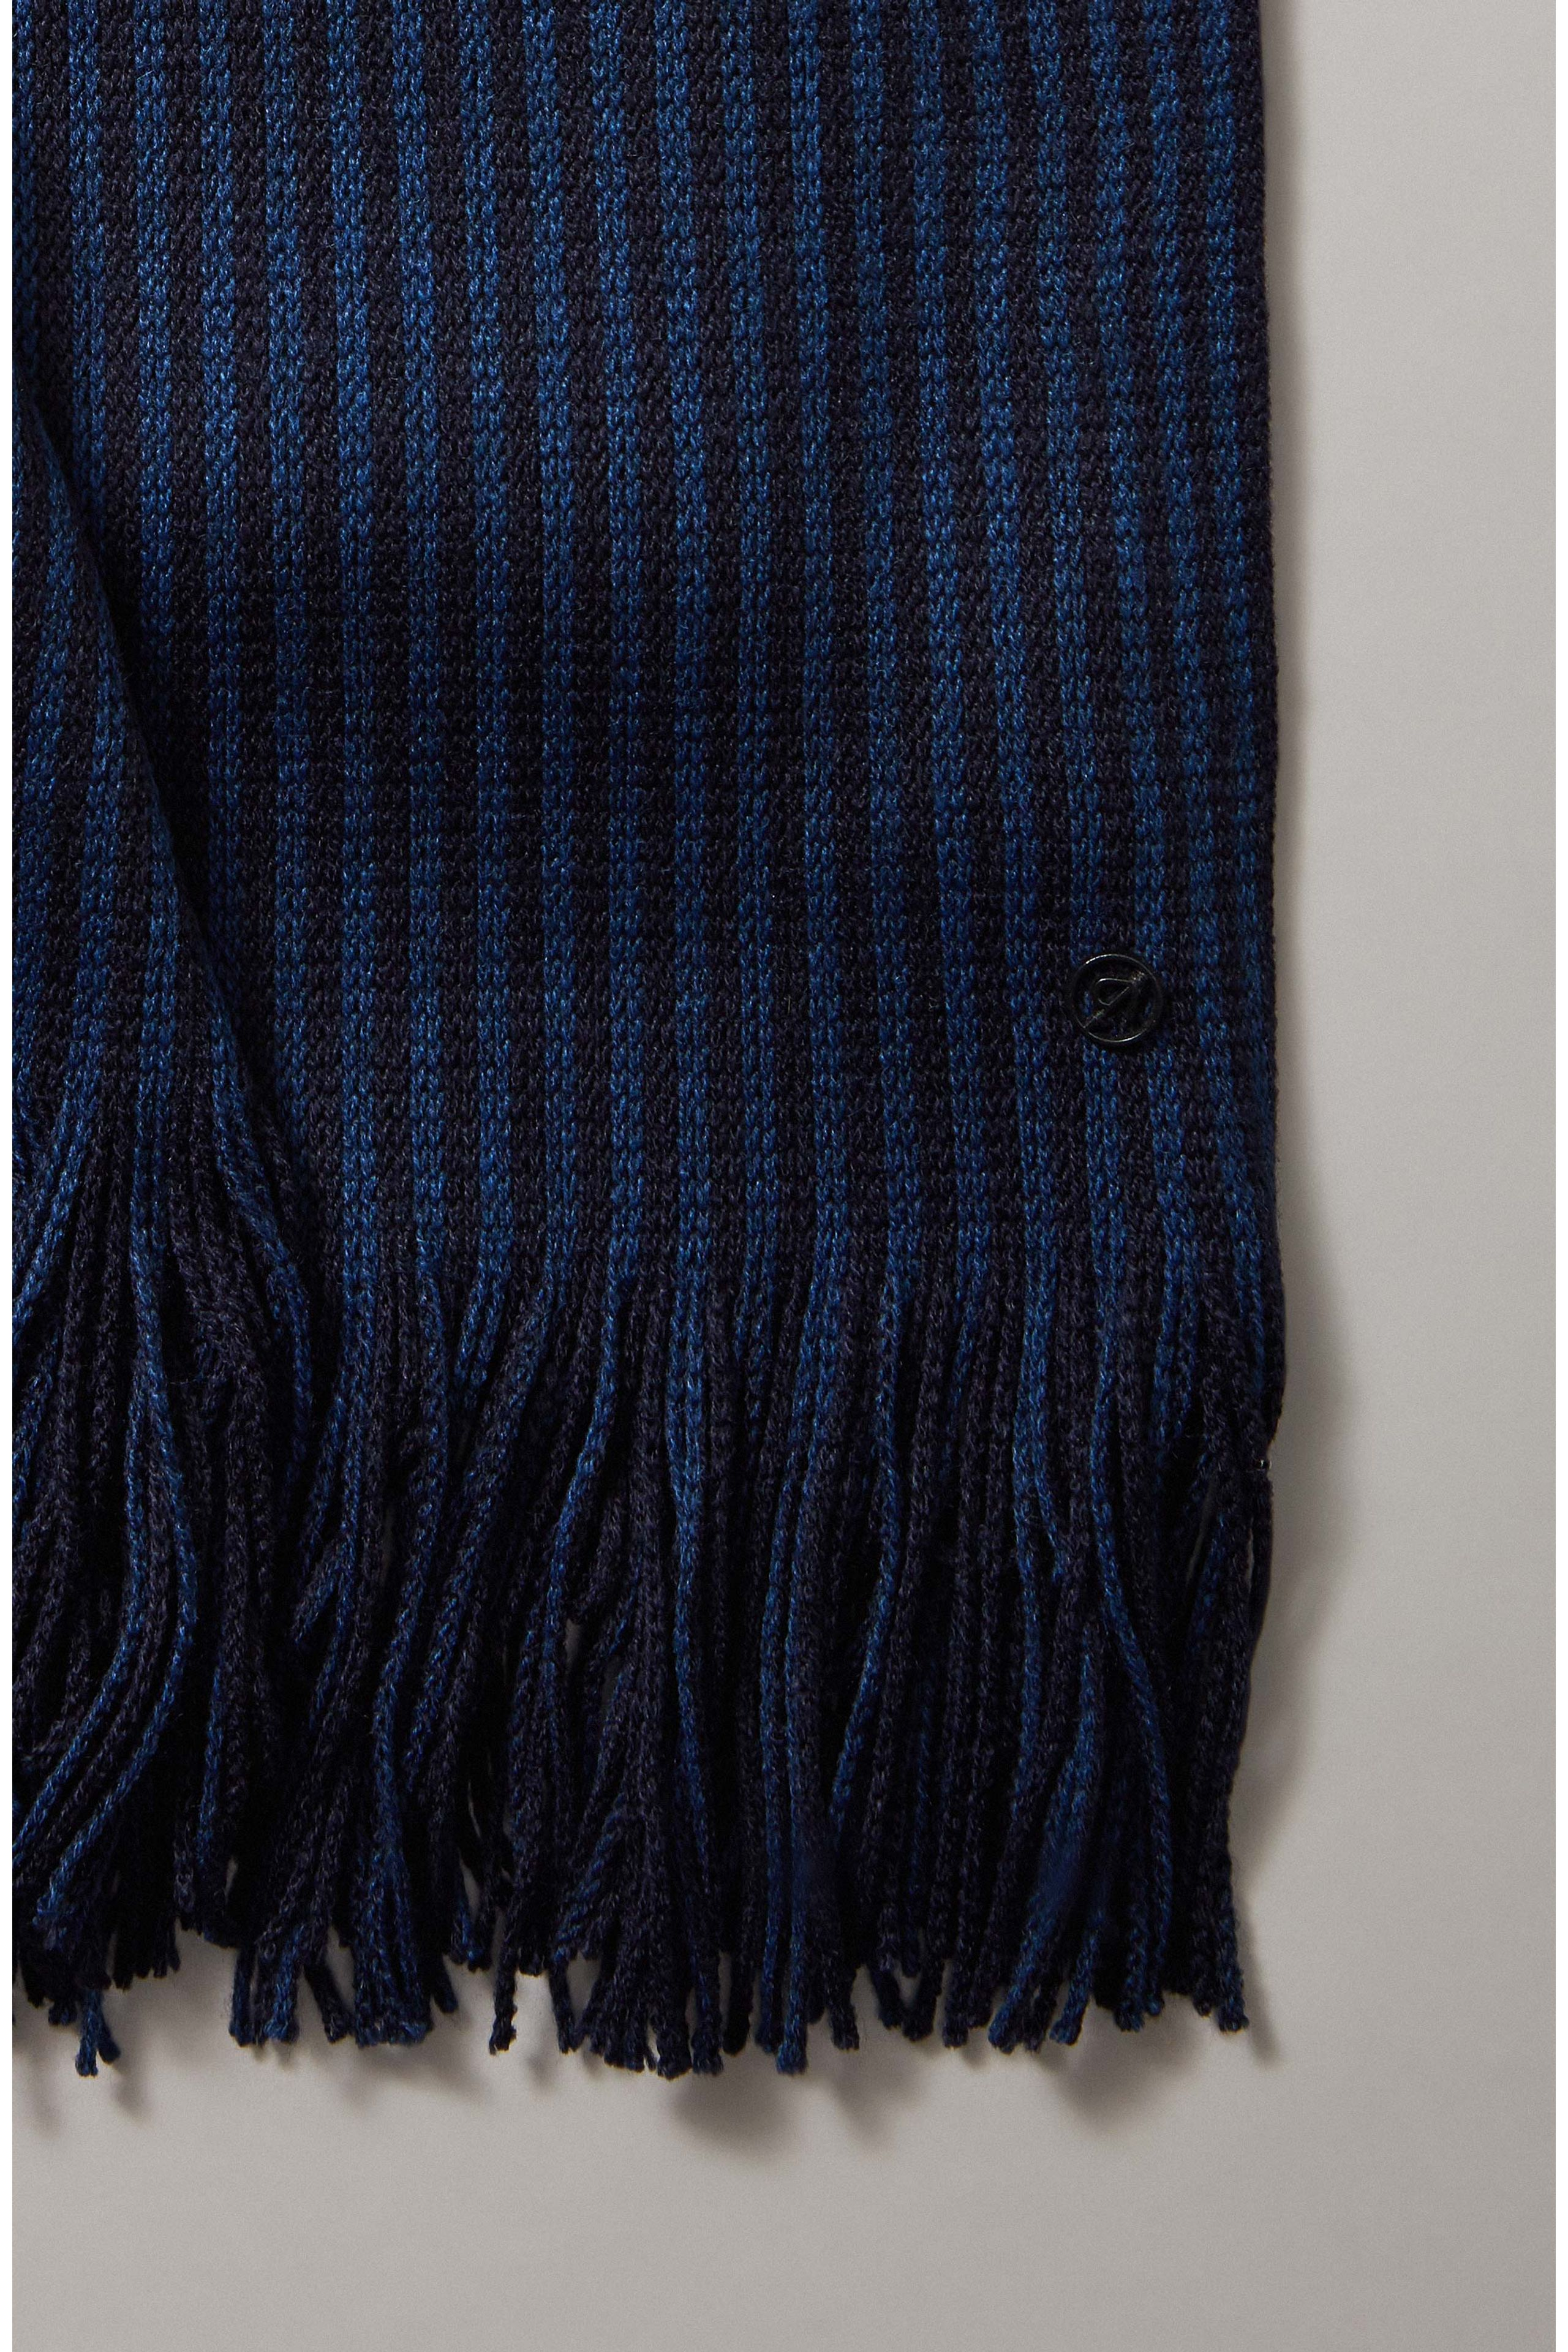 9006EAR00005_595_1-CACHECOL-TRICOT-LISTRAS